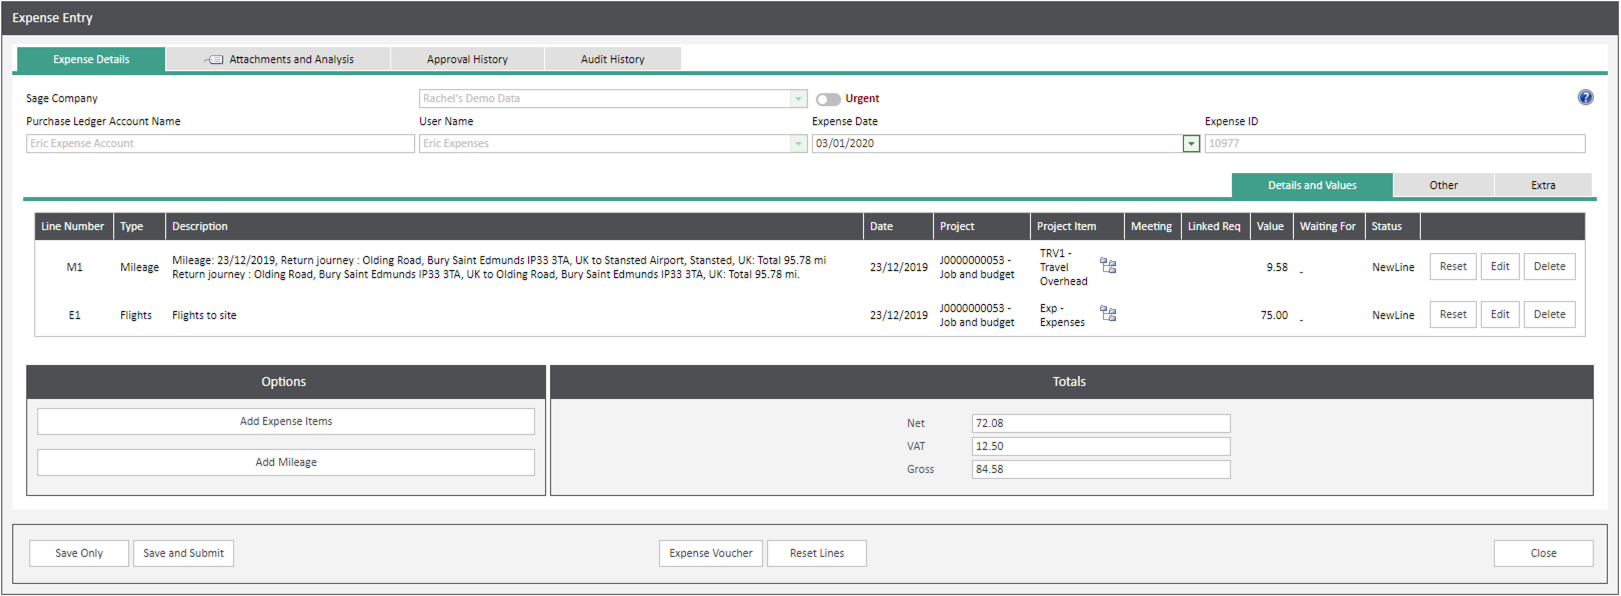 Sicon WAP Expenses Help and User Guide - Expenses HUG Section 6.2 Image 8